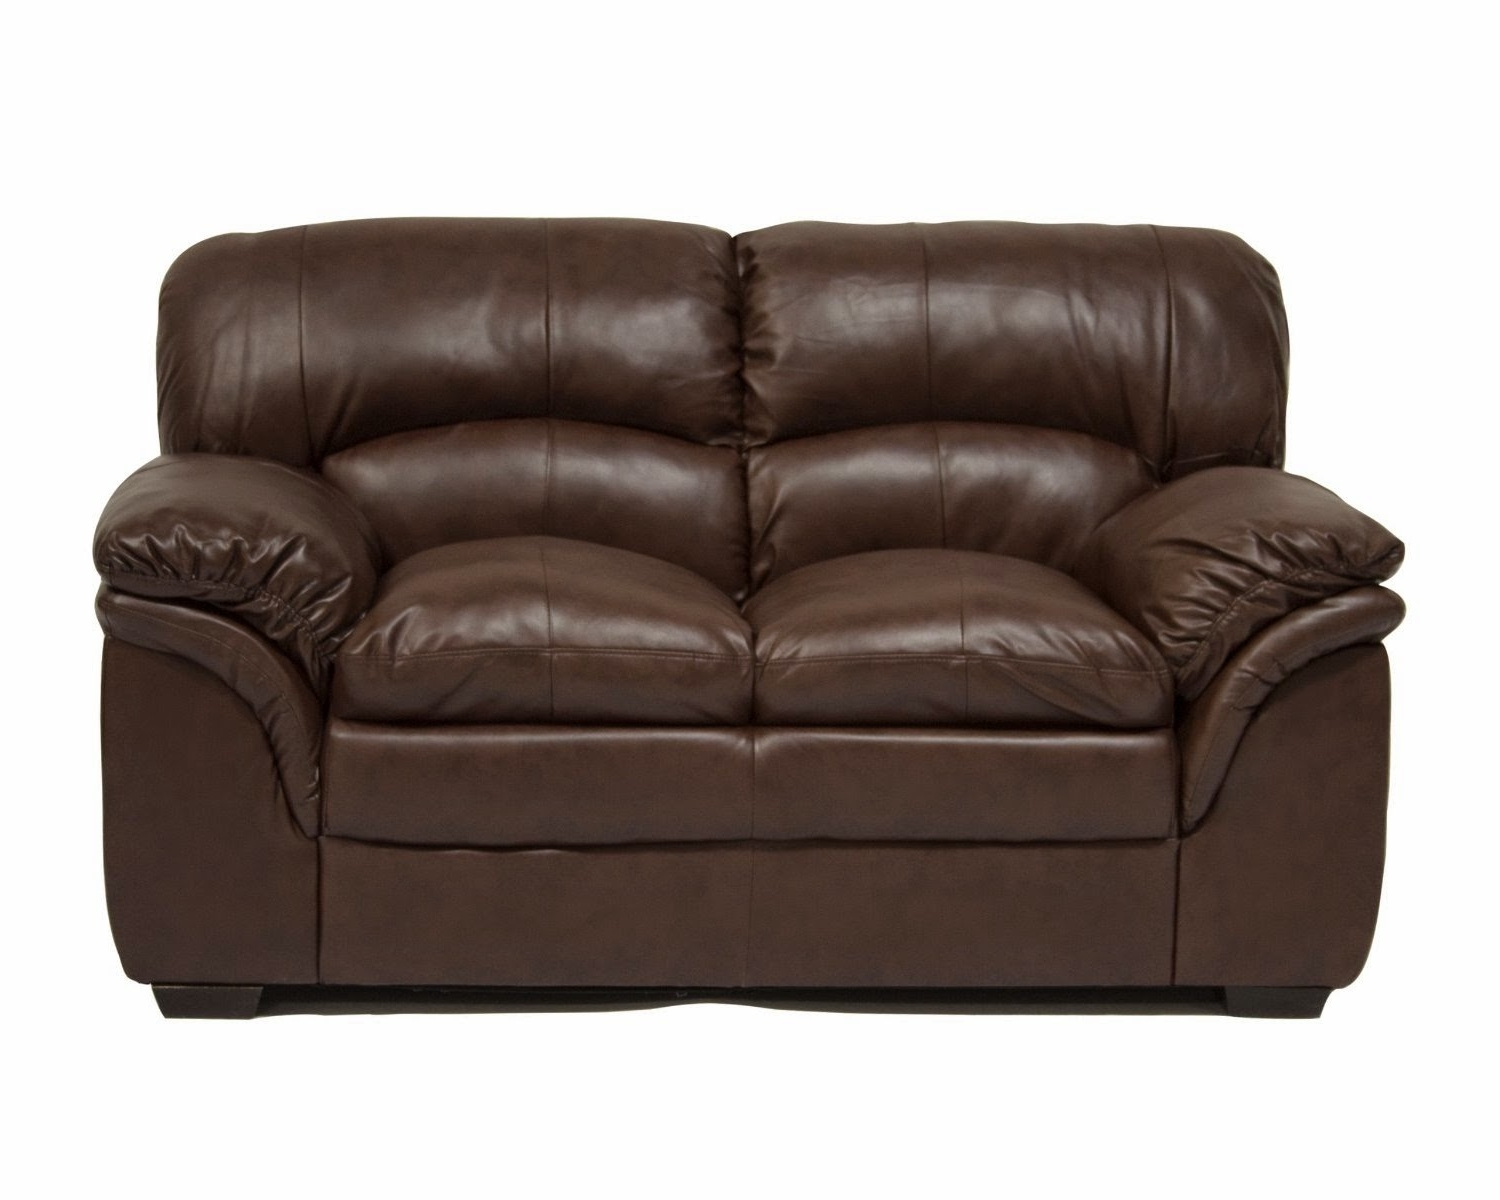 Famous 2 Seater Recliner Leather Sofas With The Best Reclining Sofas Ratings Reviews: 2 Seater Leather (View 9 of 20)